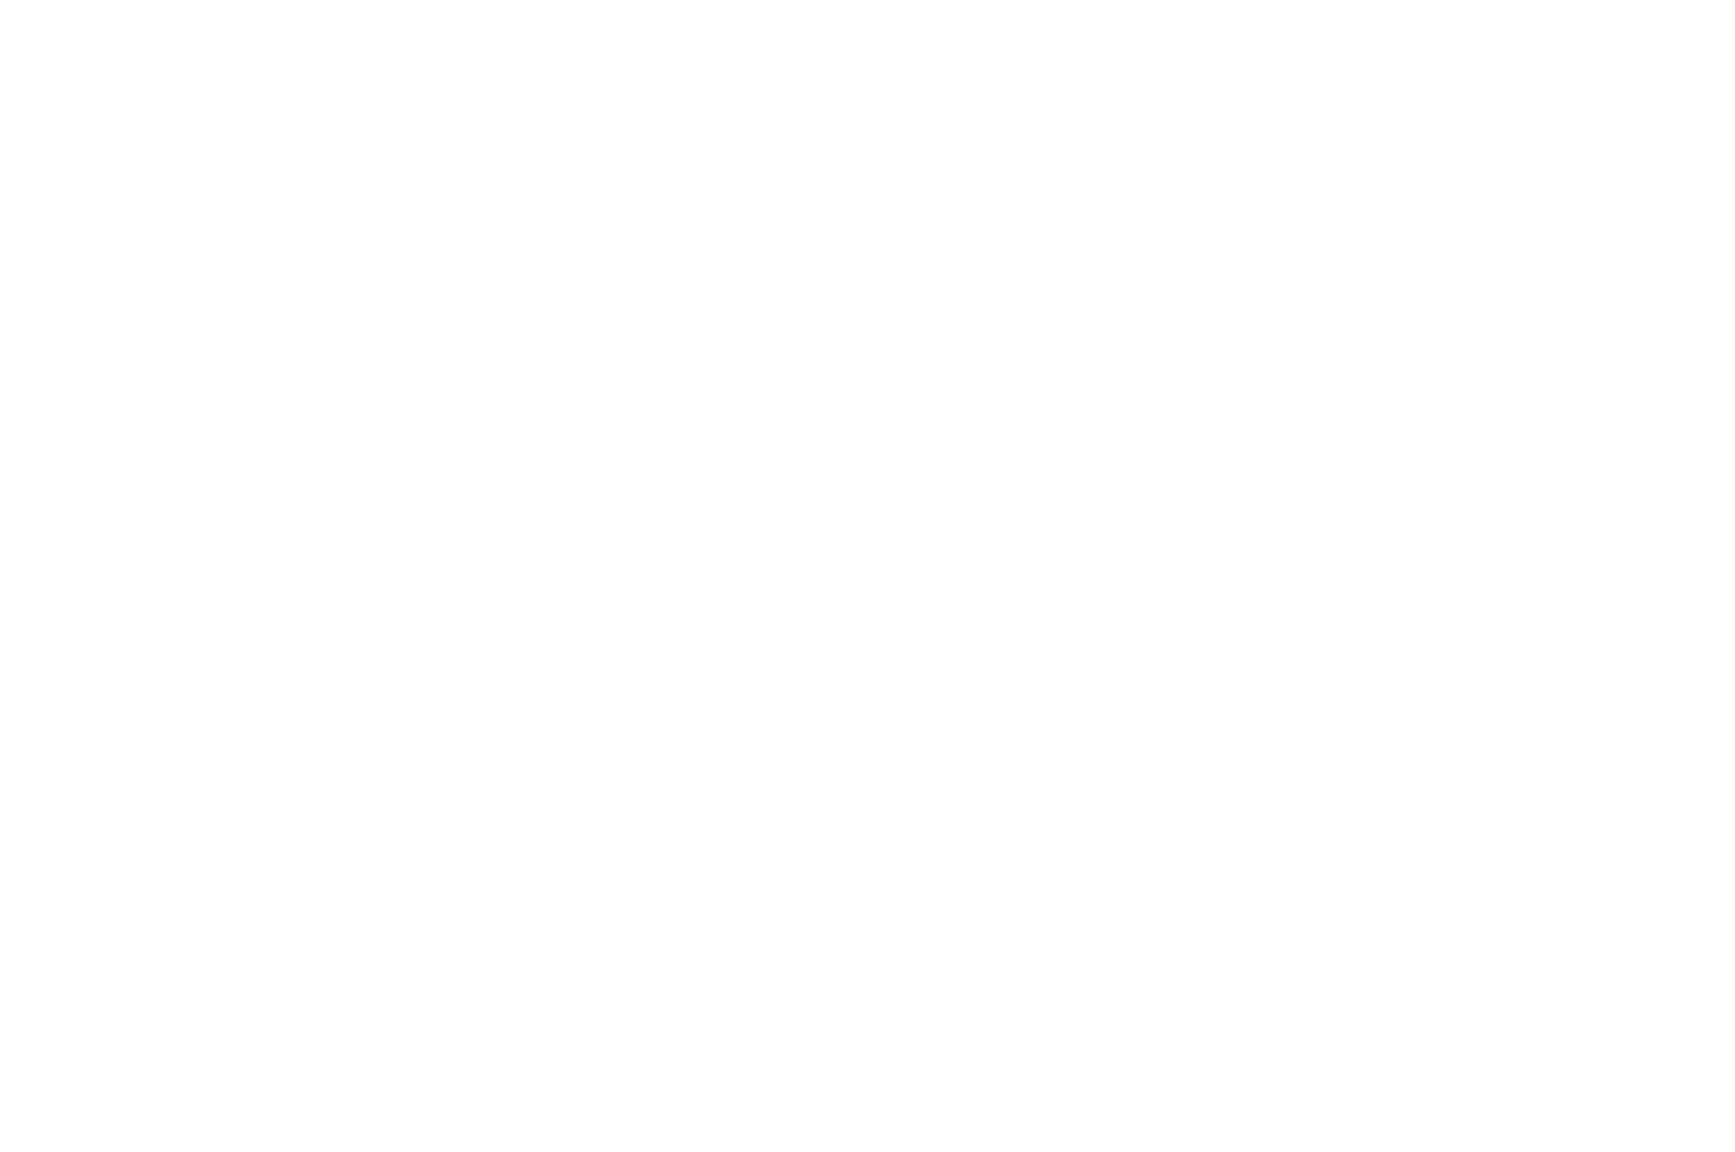 OFFICIAL SELECTION - Reedy Reels - 2019.png